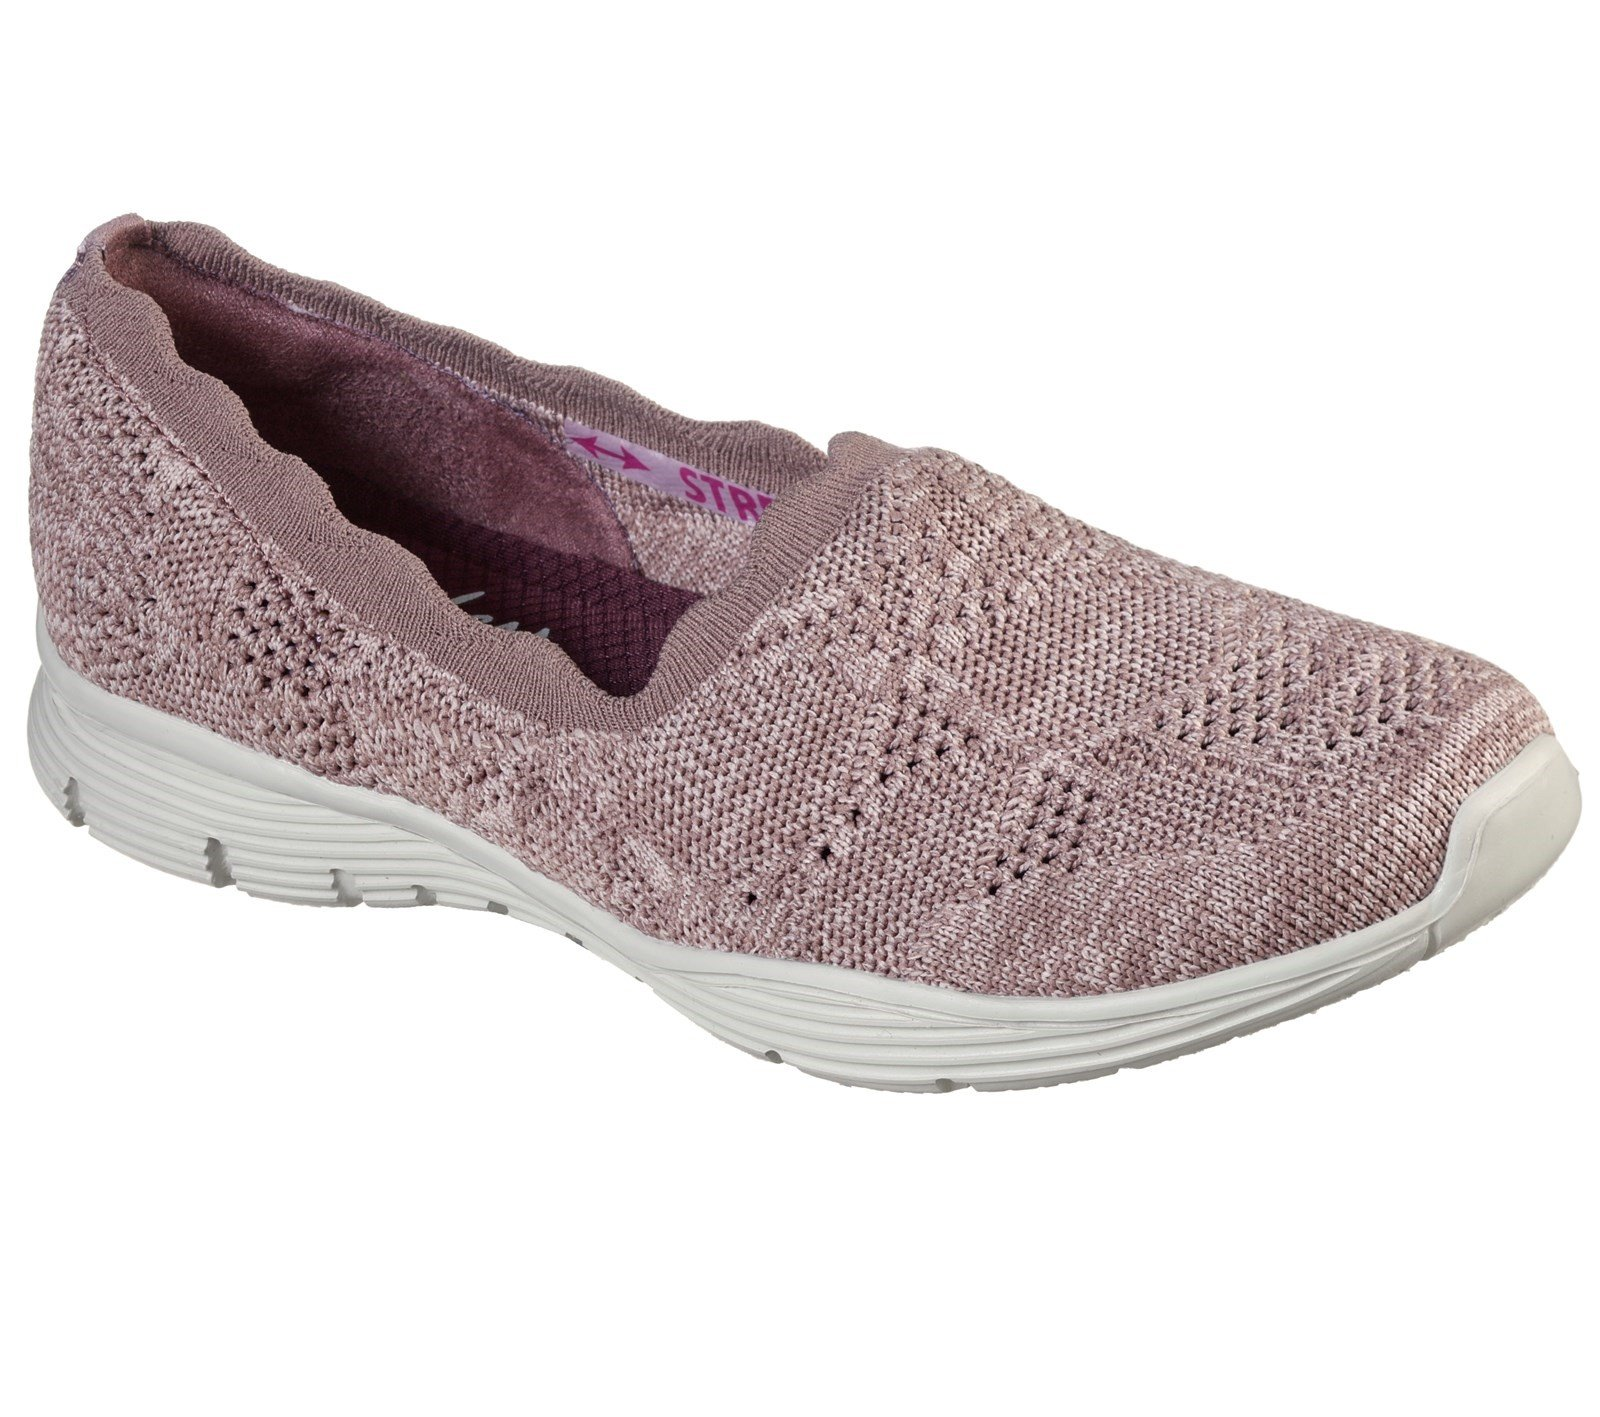 Skechers Women's Seager Bases Covered Slip On Loafer Various Colours 32127 - Mauve 7